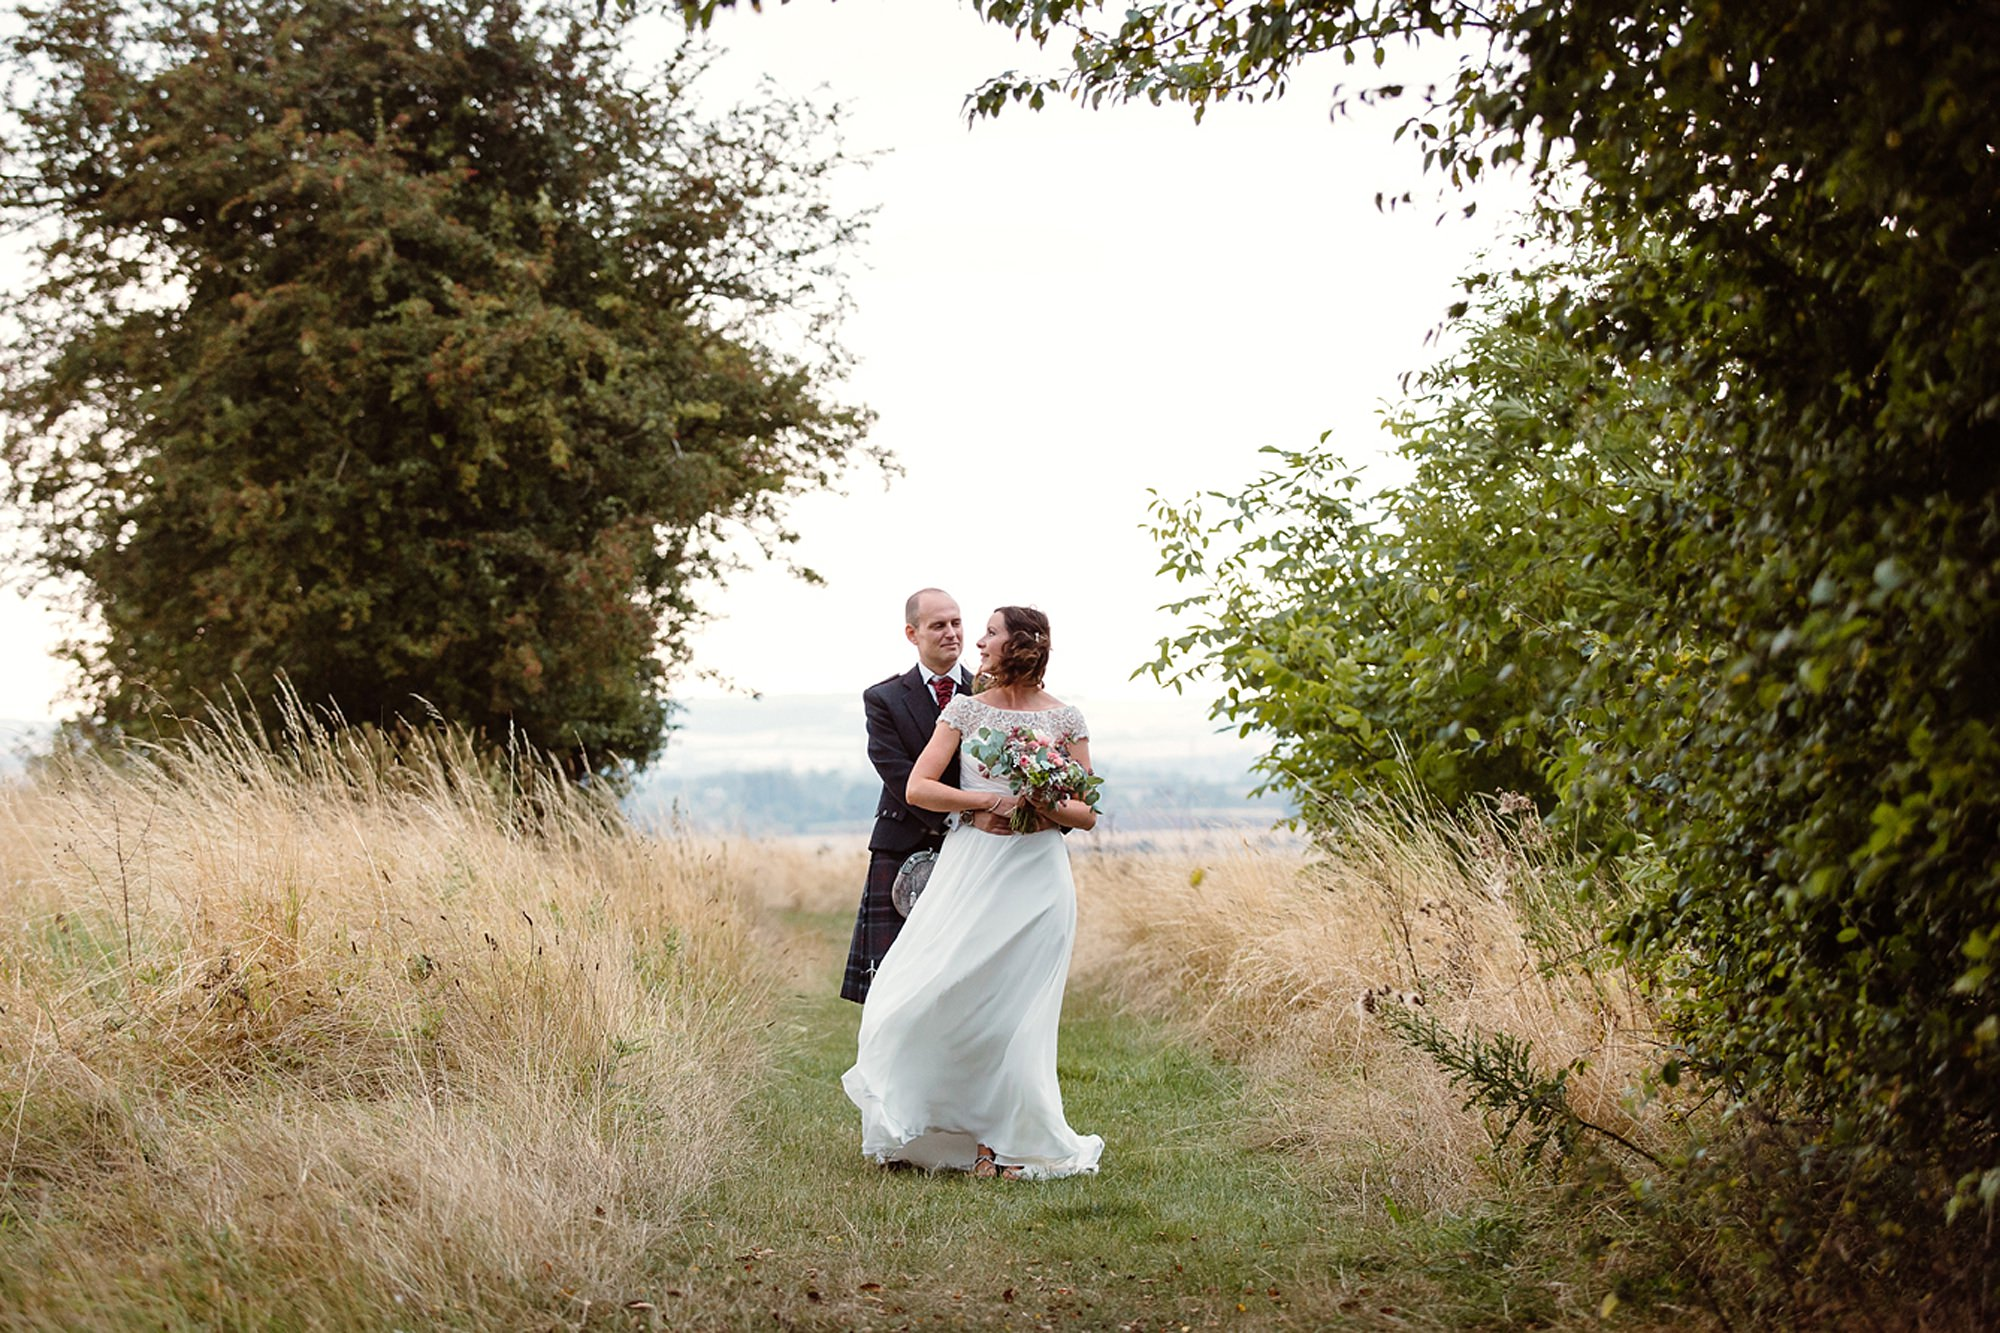 outdoor humanist wedding photography bride and grooming field